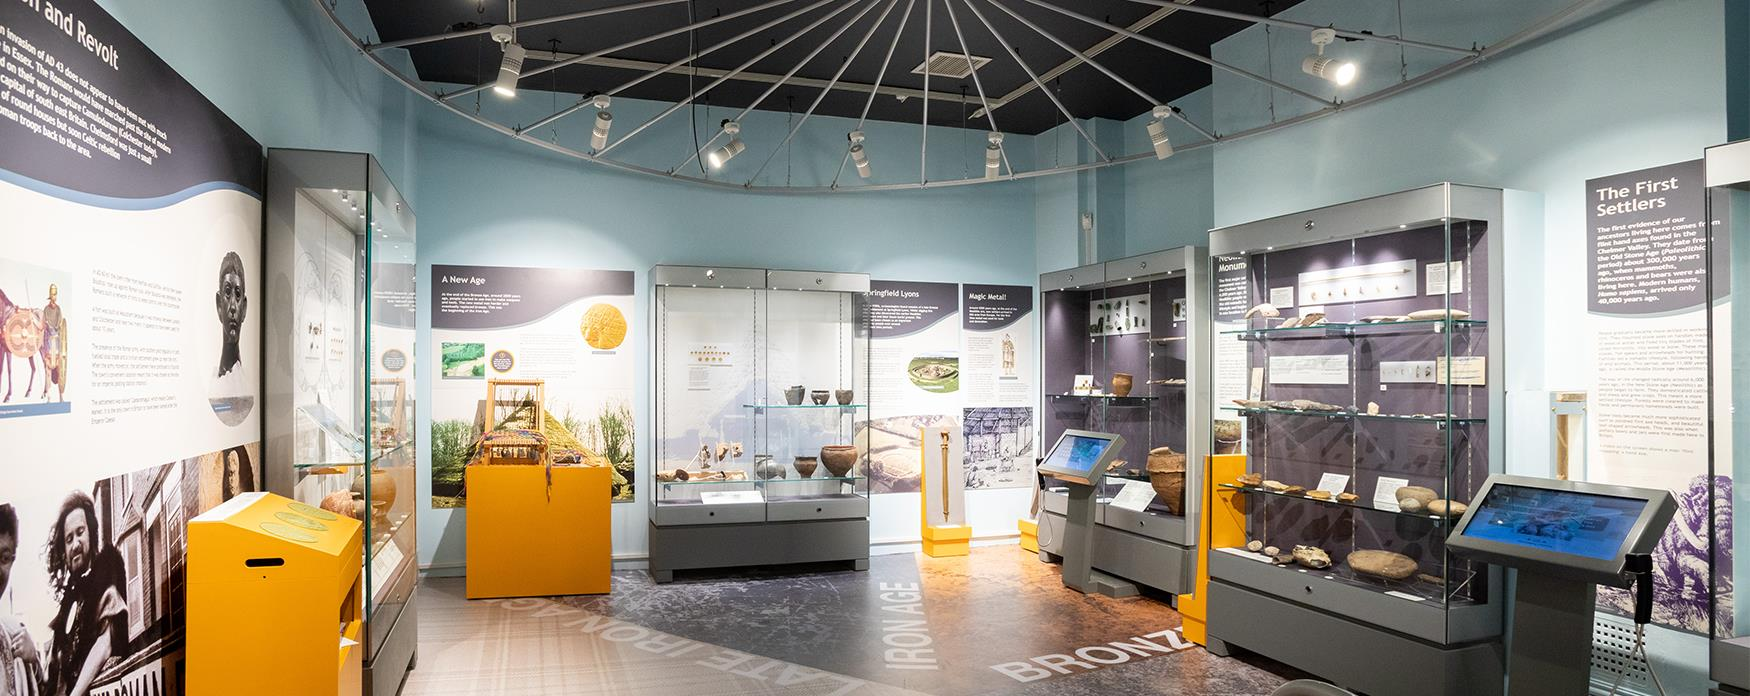 Chelmsford Museum interior with display cabinets, wall panels and interactive screens